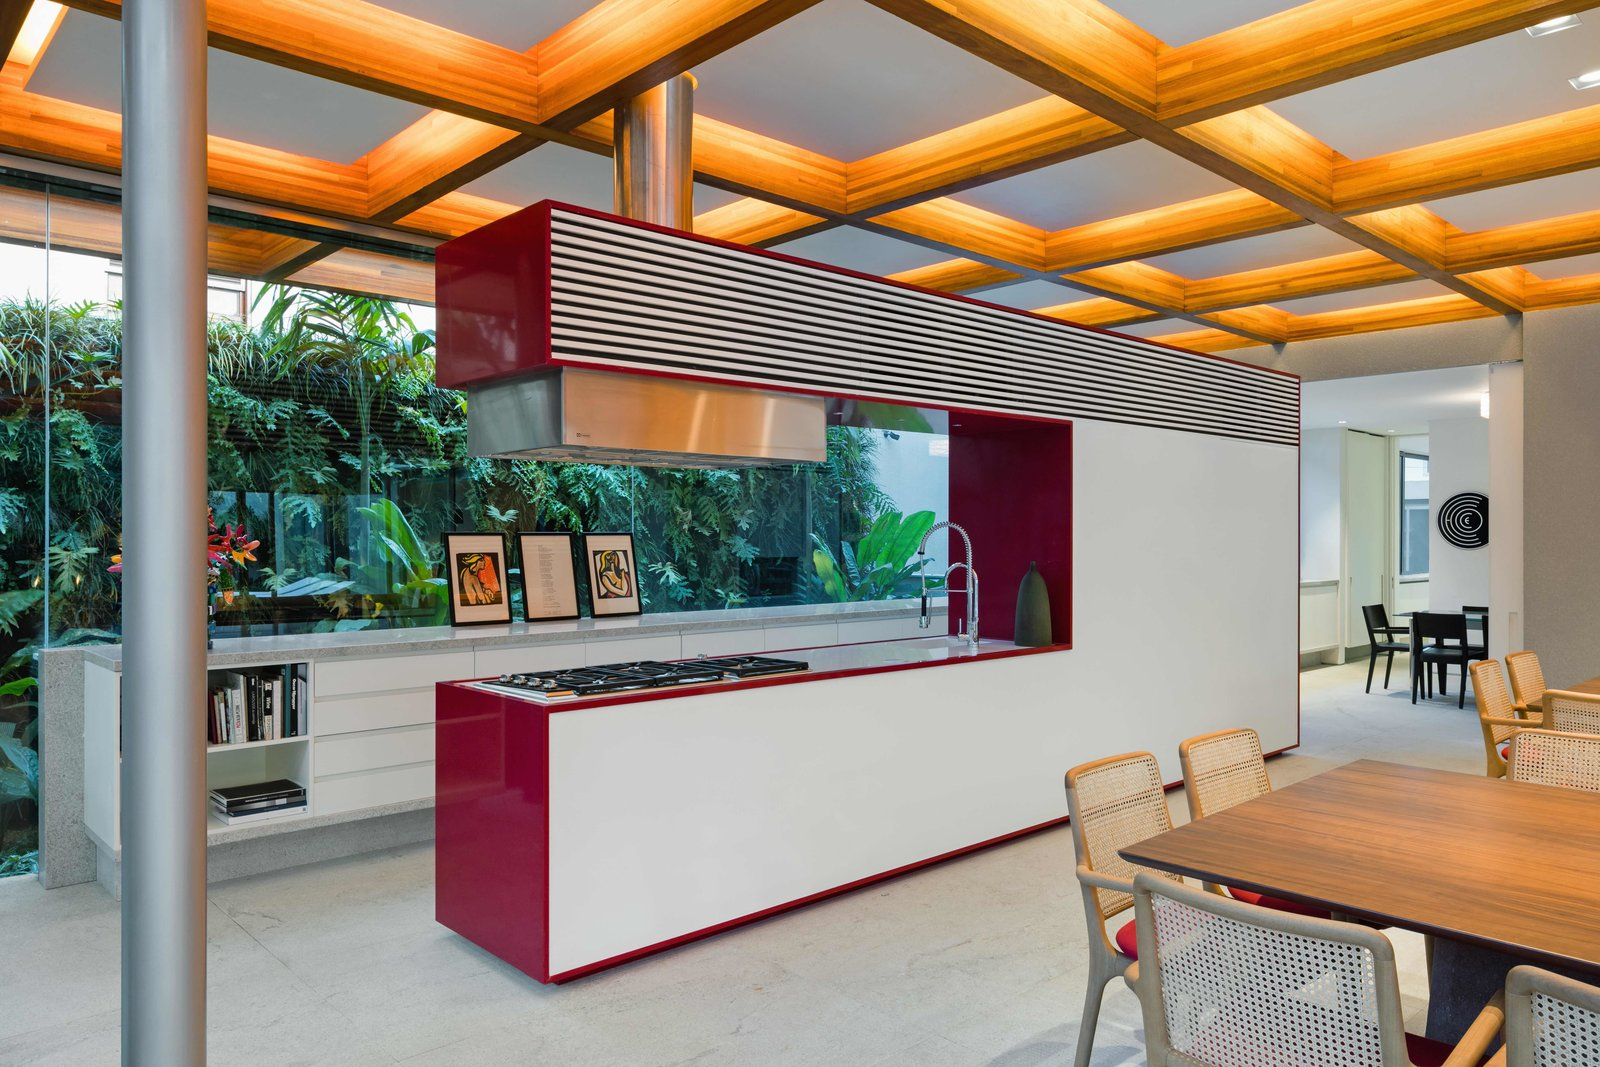 Kitchen, Recessed Lighting, Colorful Cabinet, Concrete Floor, Range, Drop In Sink, White Cabinet, and Range Hood  Best Photos from This Brilliant Brazilian Abode Was Designed Around an Imposing Tree